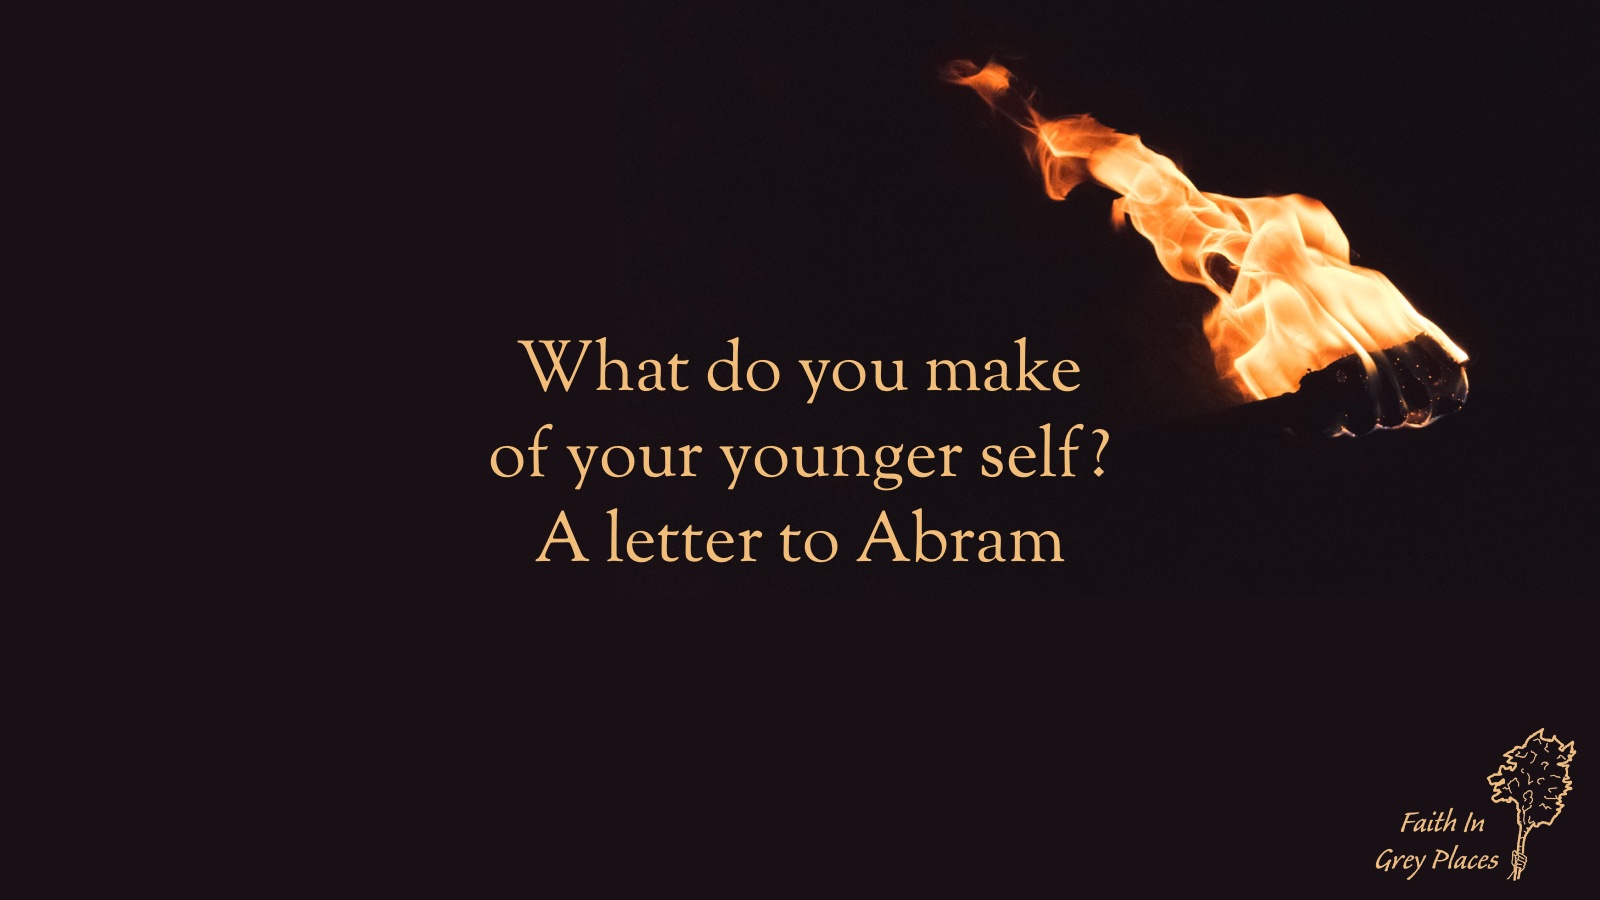 Flaming torch against a black background with the words: What do you make of your younger self? A letter to Abram